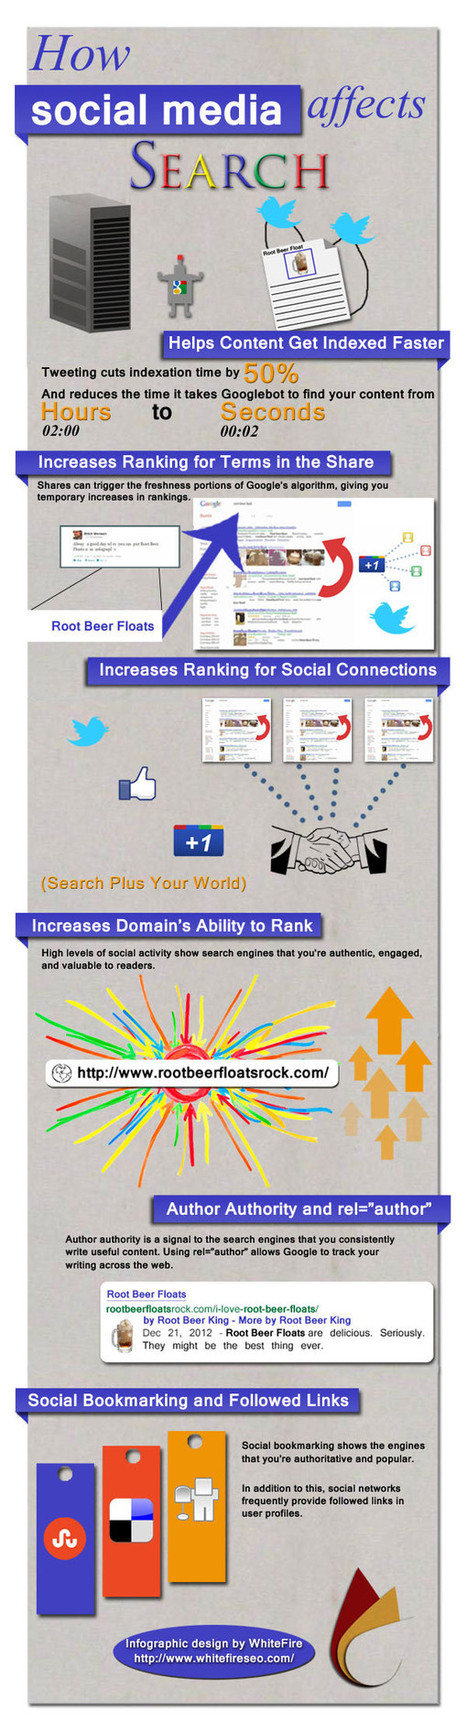 How Social Media Impacts SEO and Site Ranking: infographic | Better know and better use Social Media today (facebook, twitter...) | Scoop.it